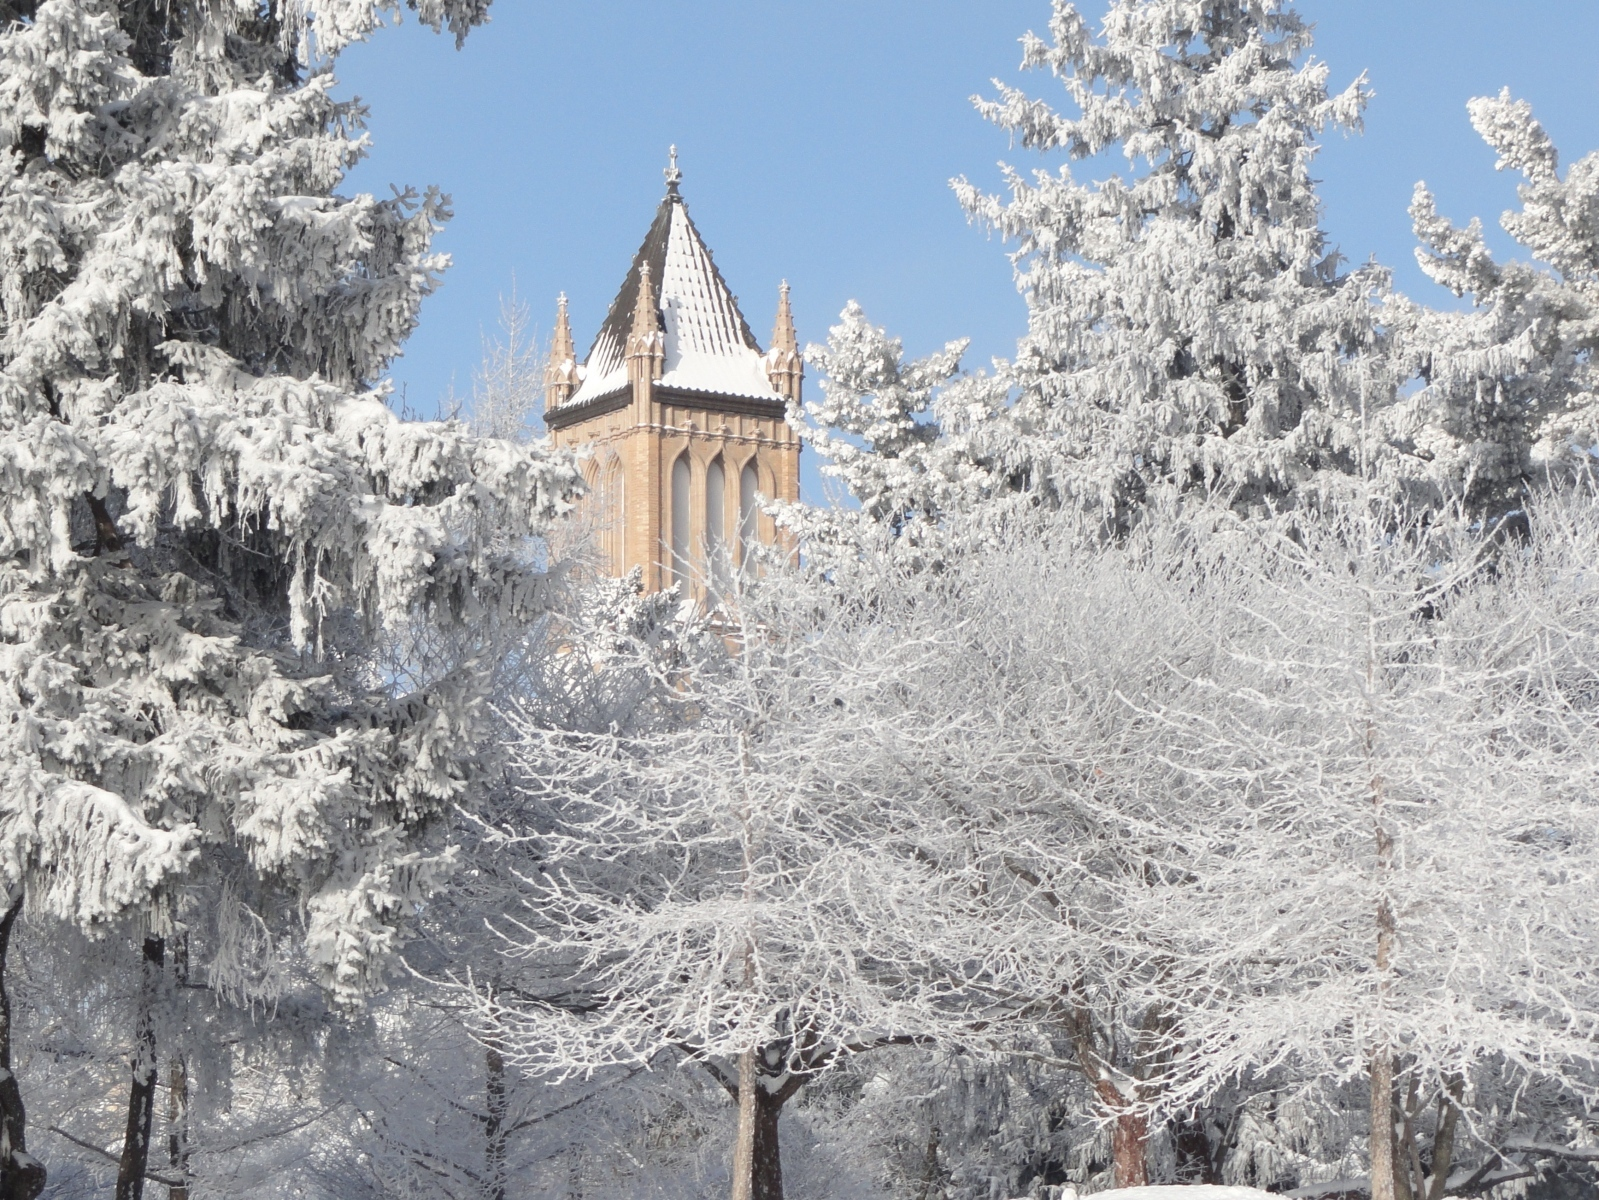 picture of Campanile and trees in winter